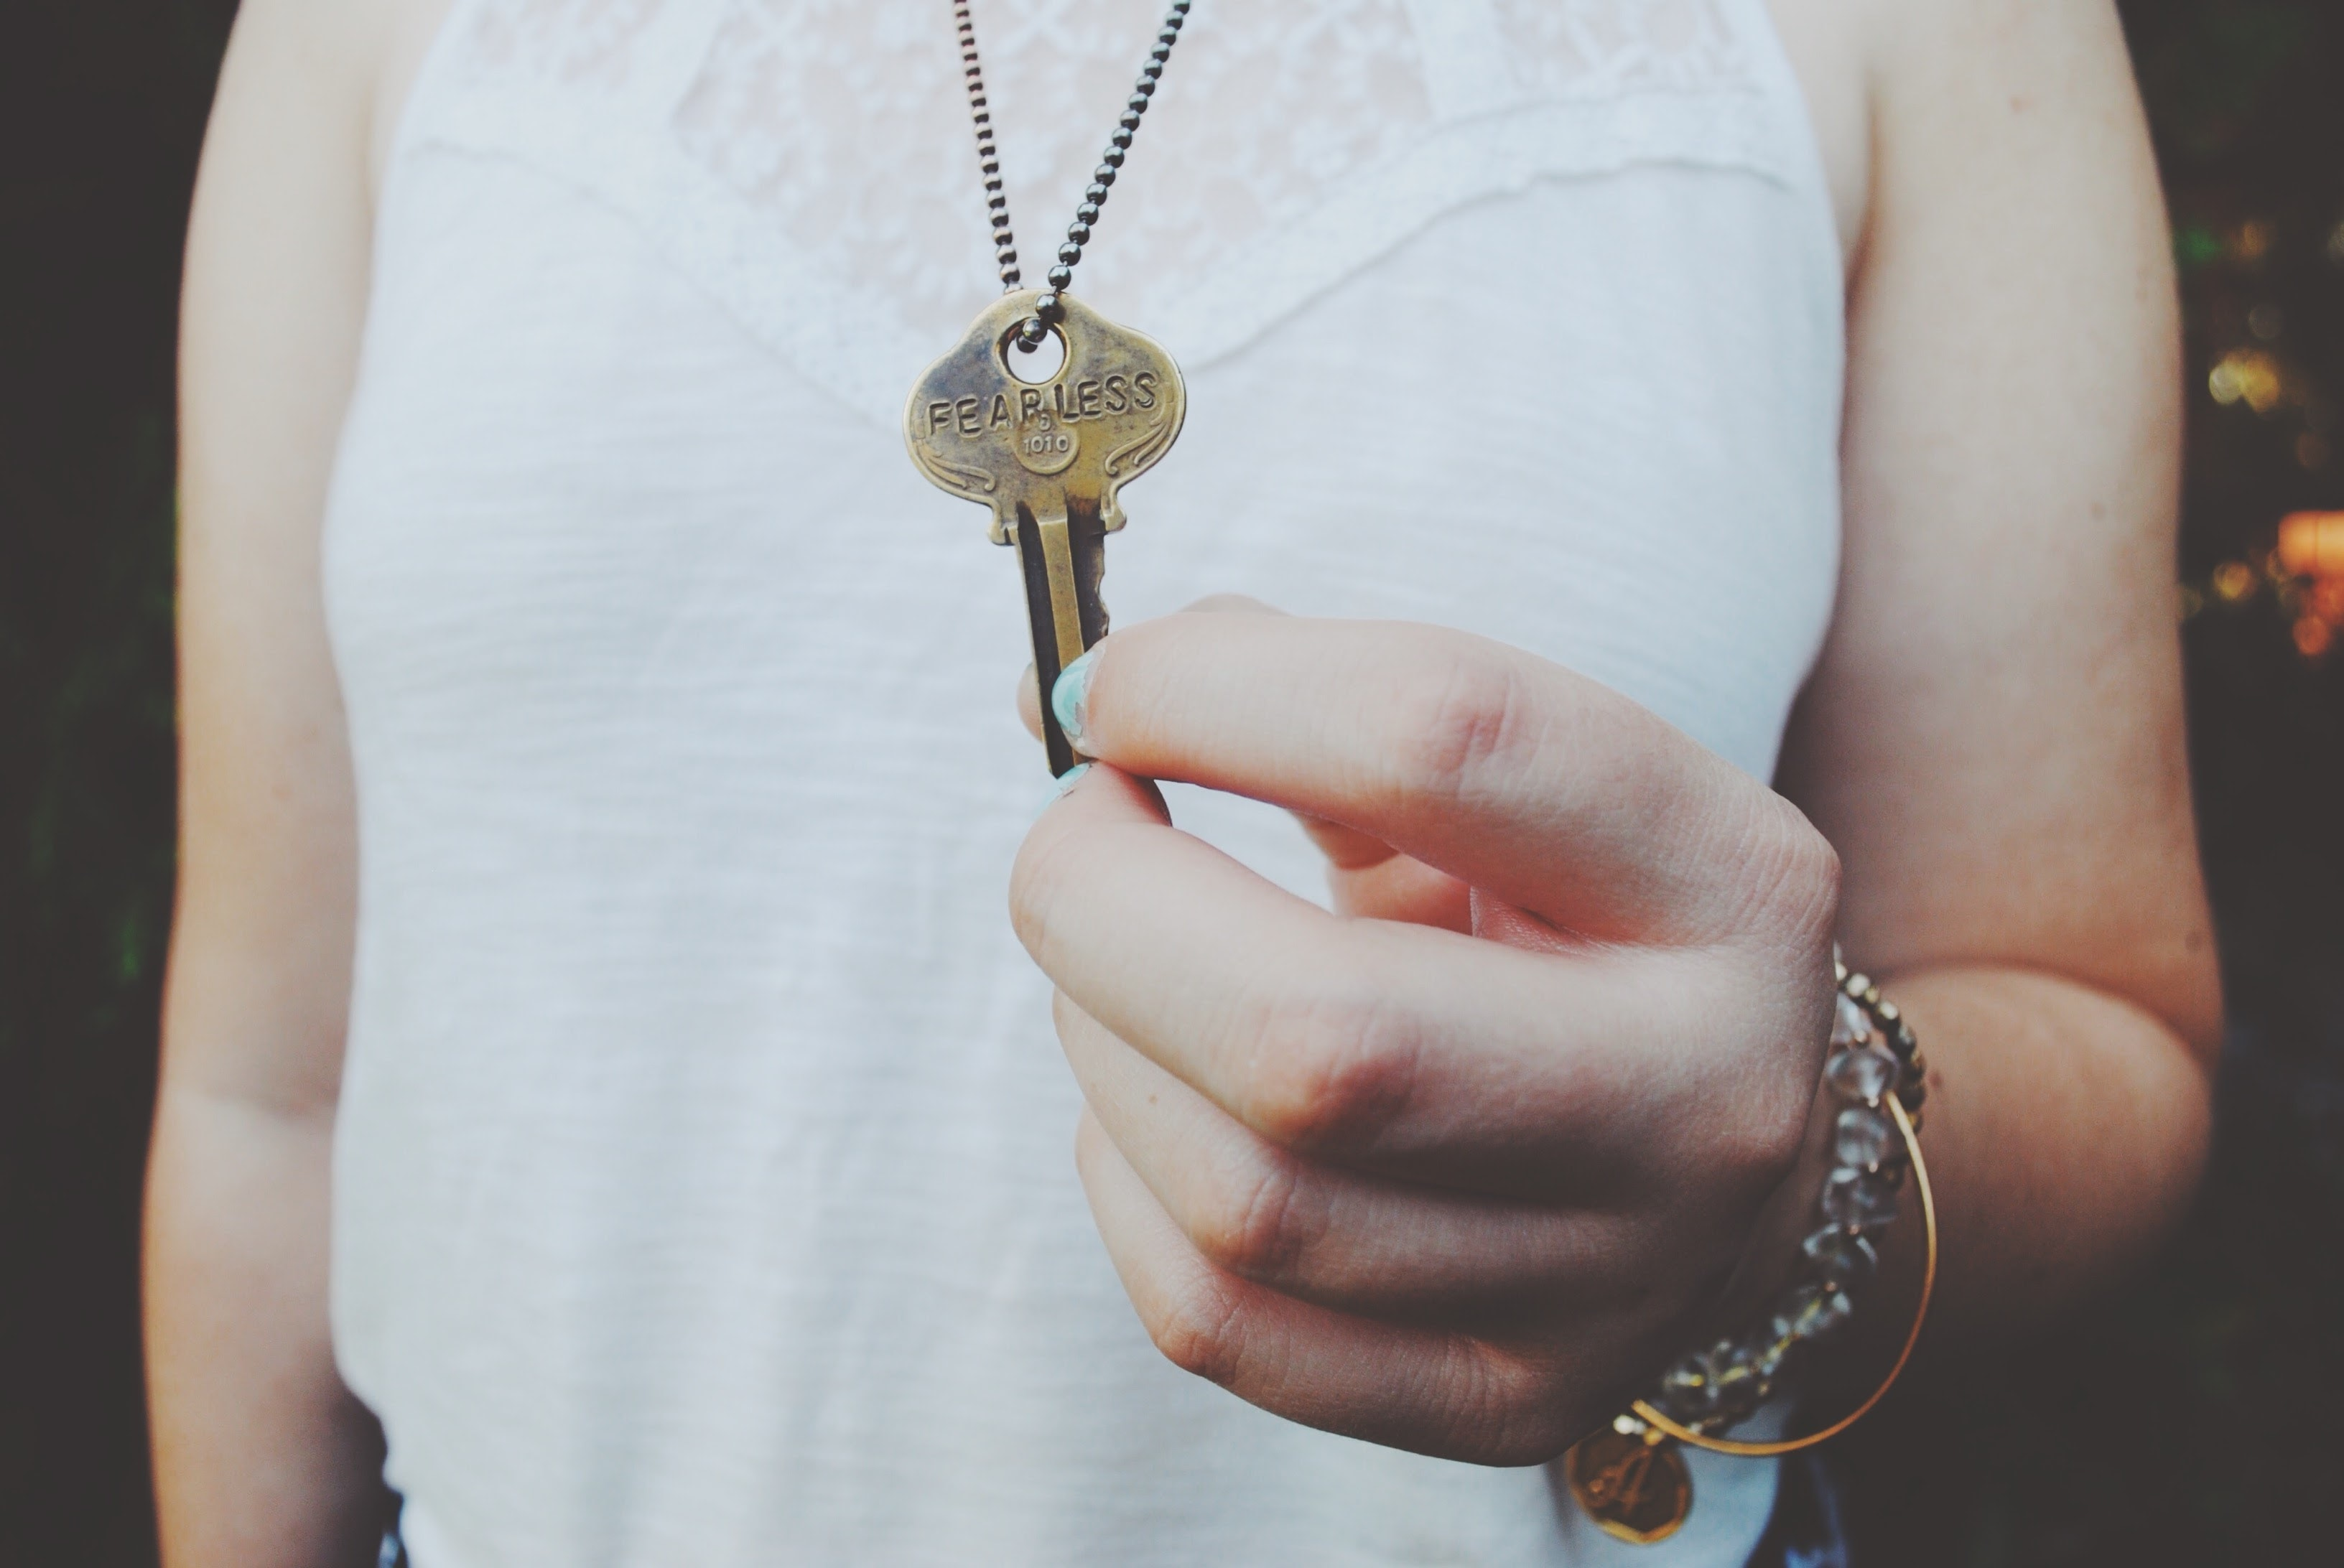 """A person holding a key with the word """"fearless"""" etched on it"""